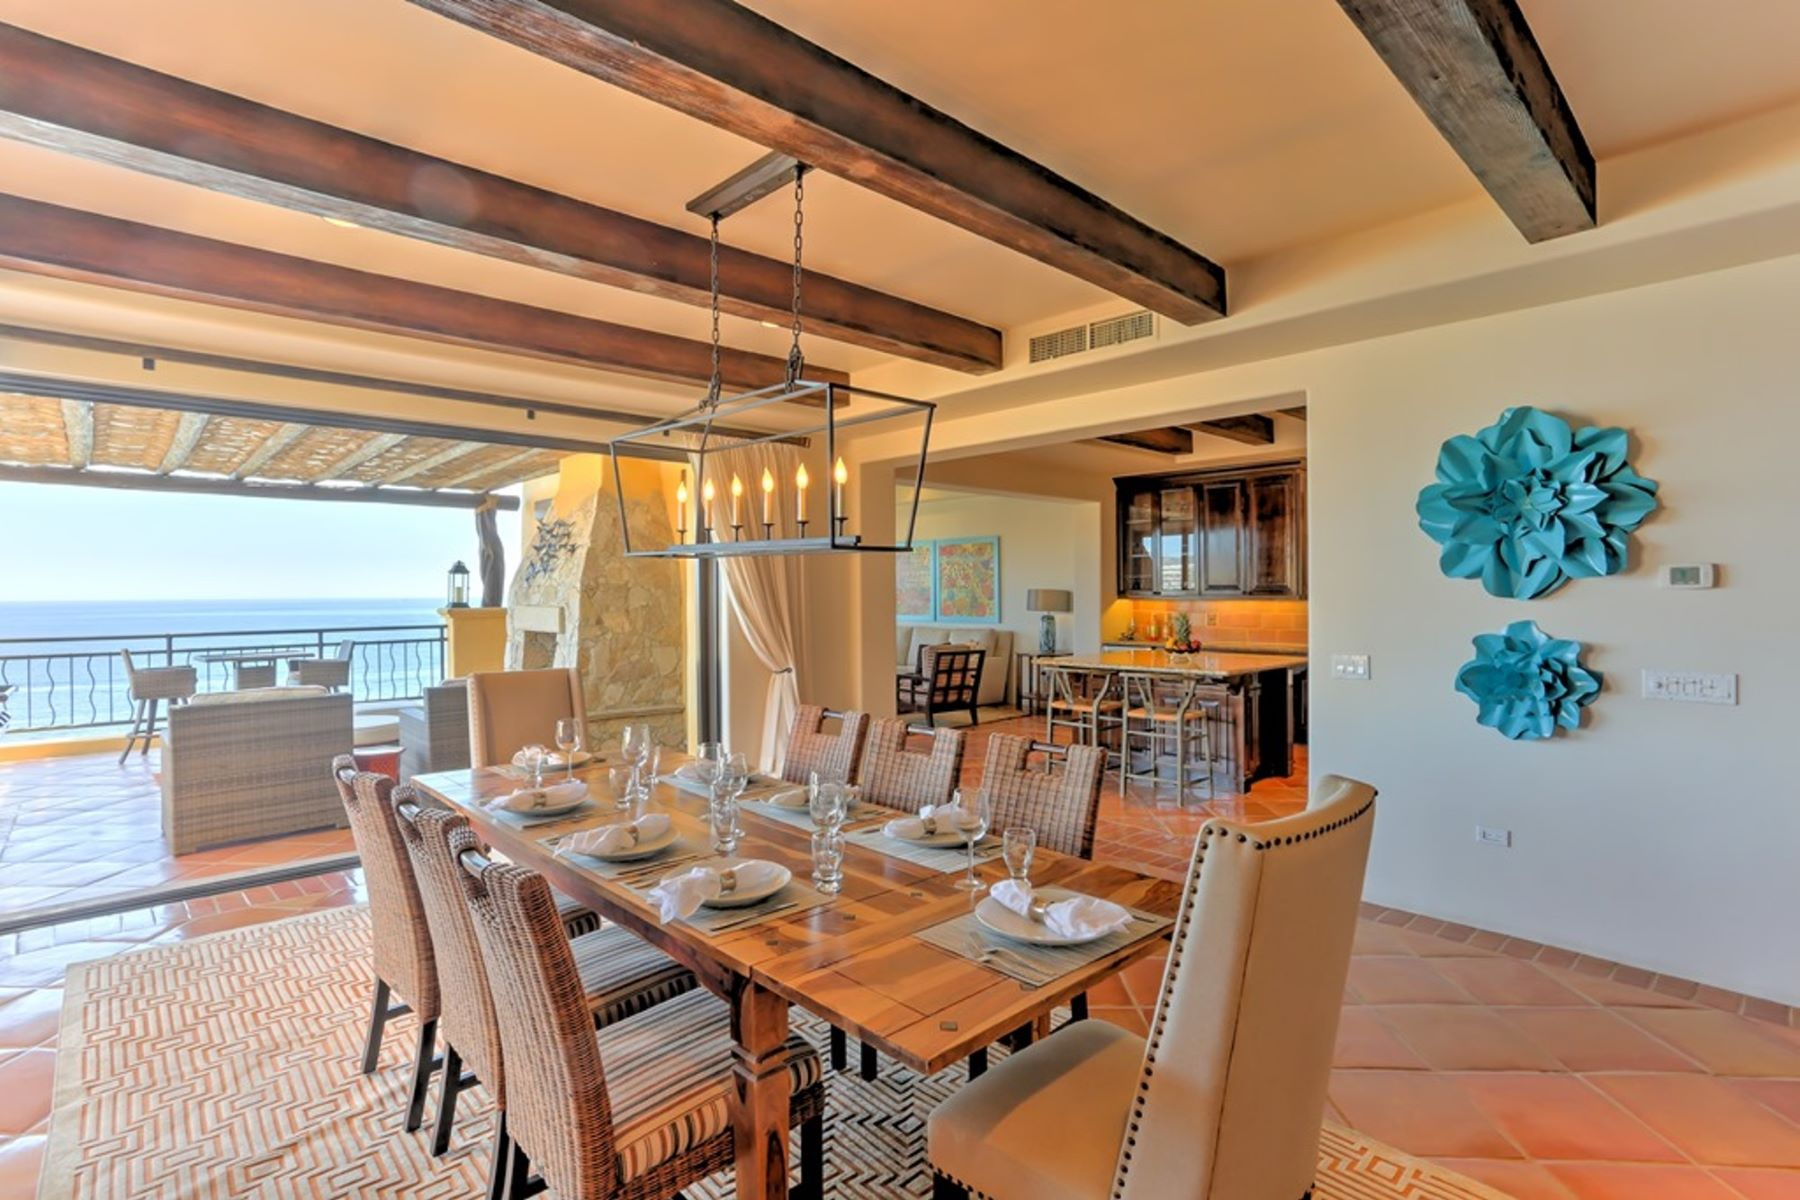 Additional photo for property listing at Hacienda penthouse 4-601 Cabo San Lucas, Baja California Sur Mexico